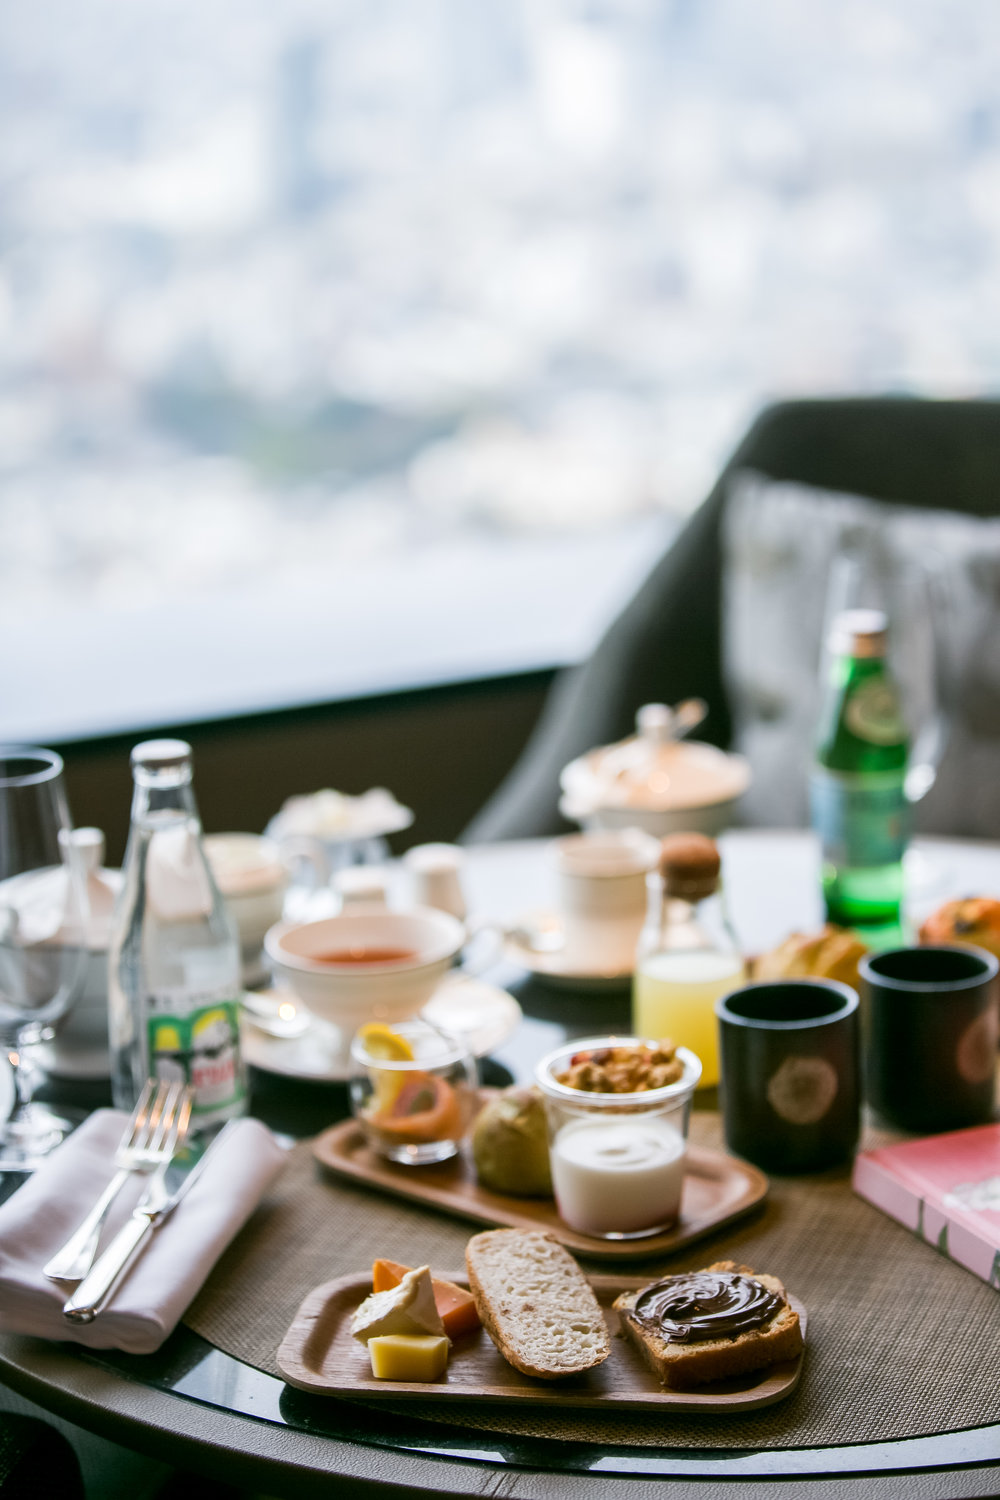 Breakfast spread at The Ritz-Carlton Tokyo